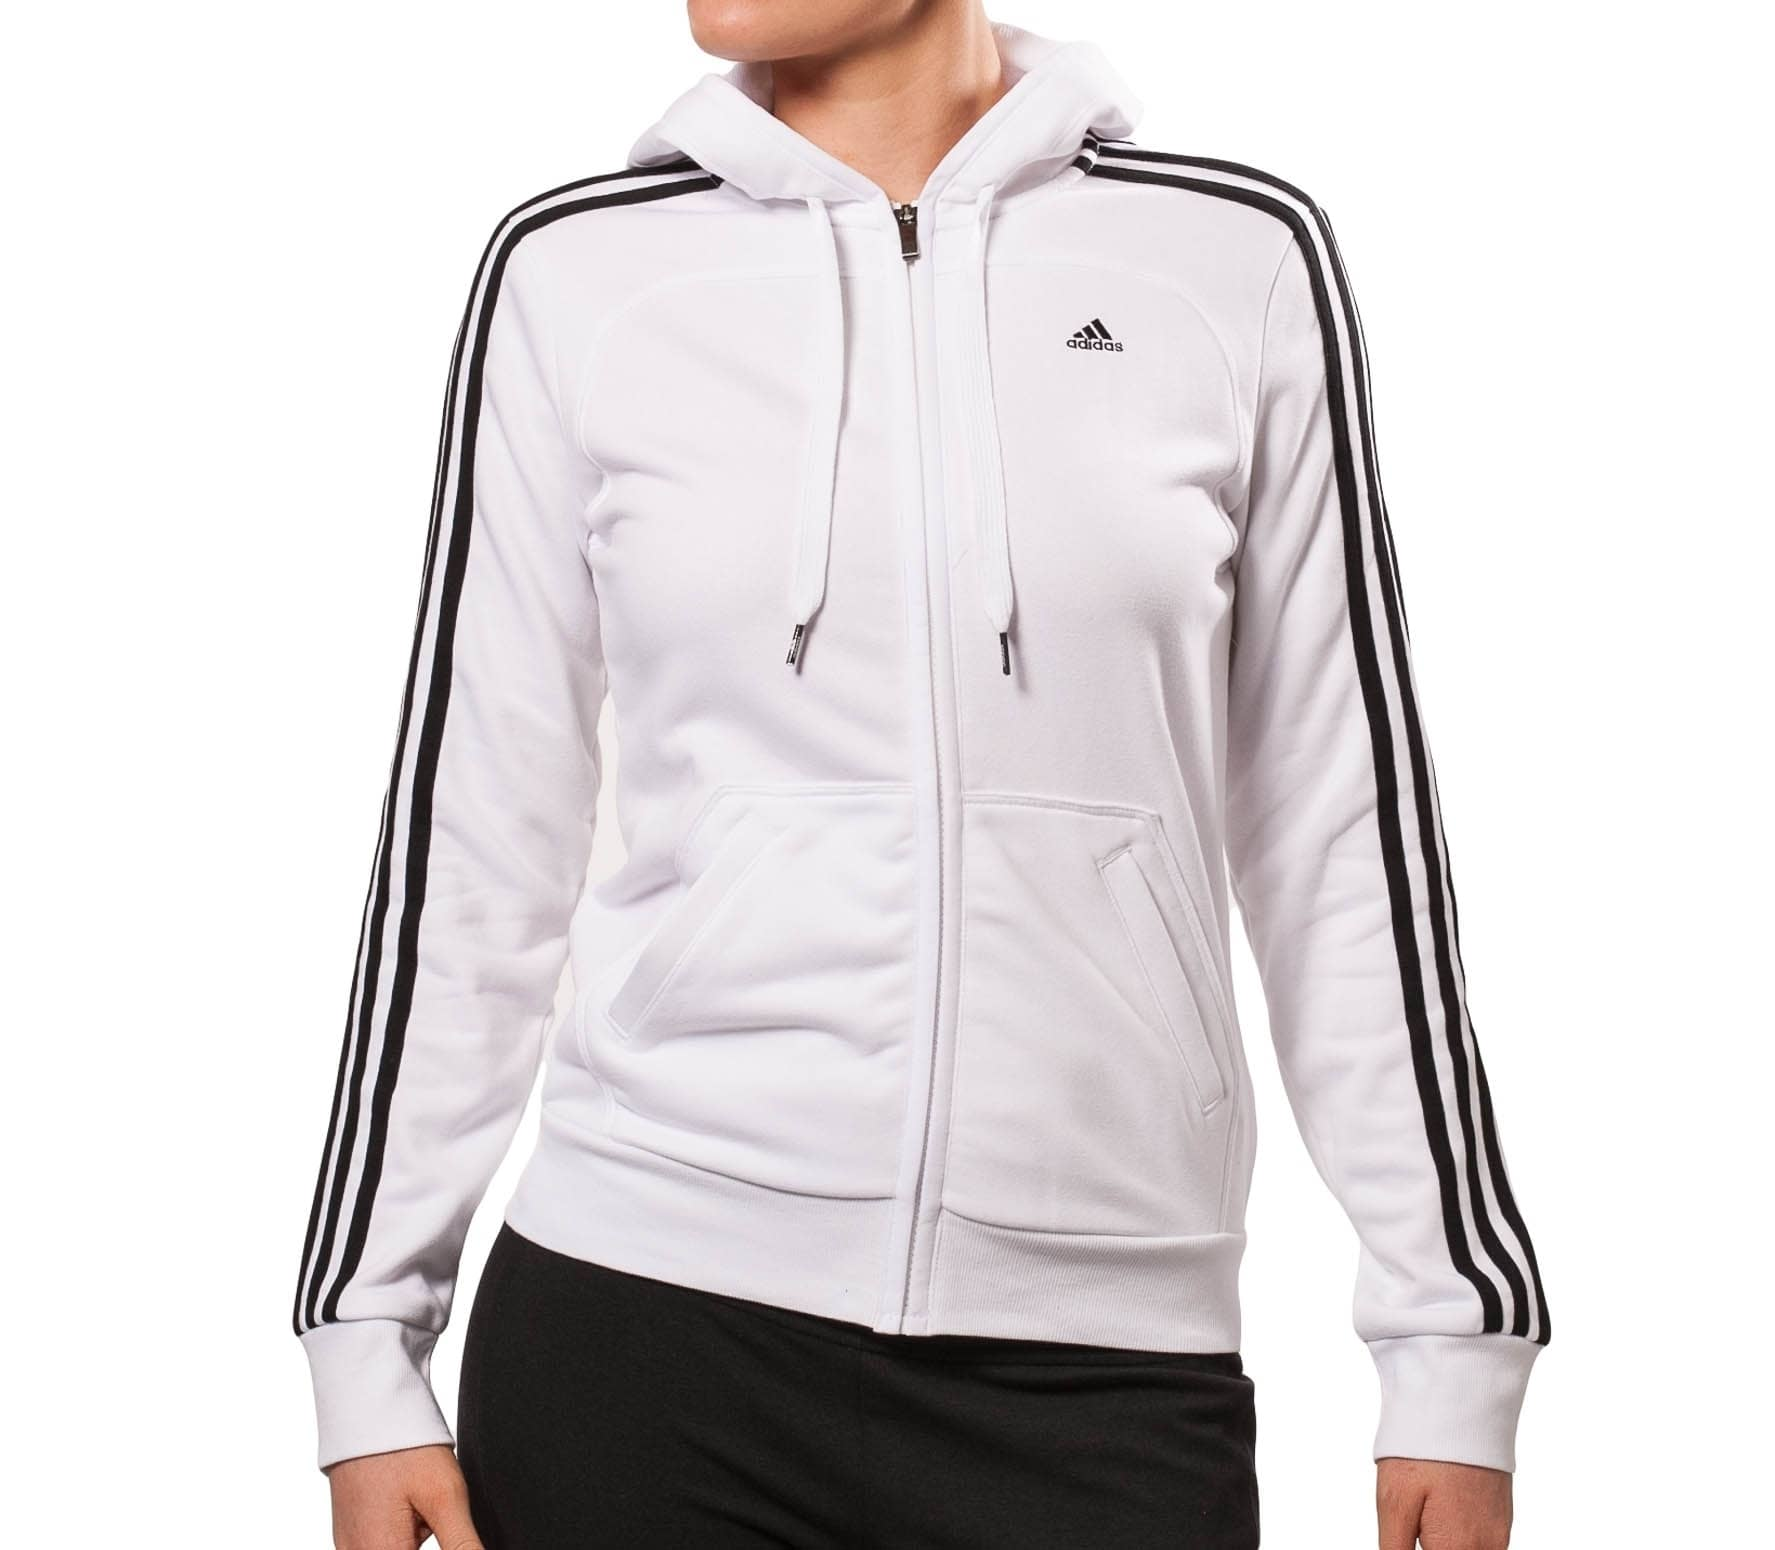 adidas Femmes Essentials 3 Stripes Full Zip Hoody Jacket Dames